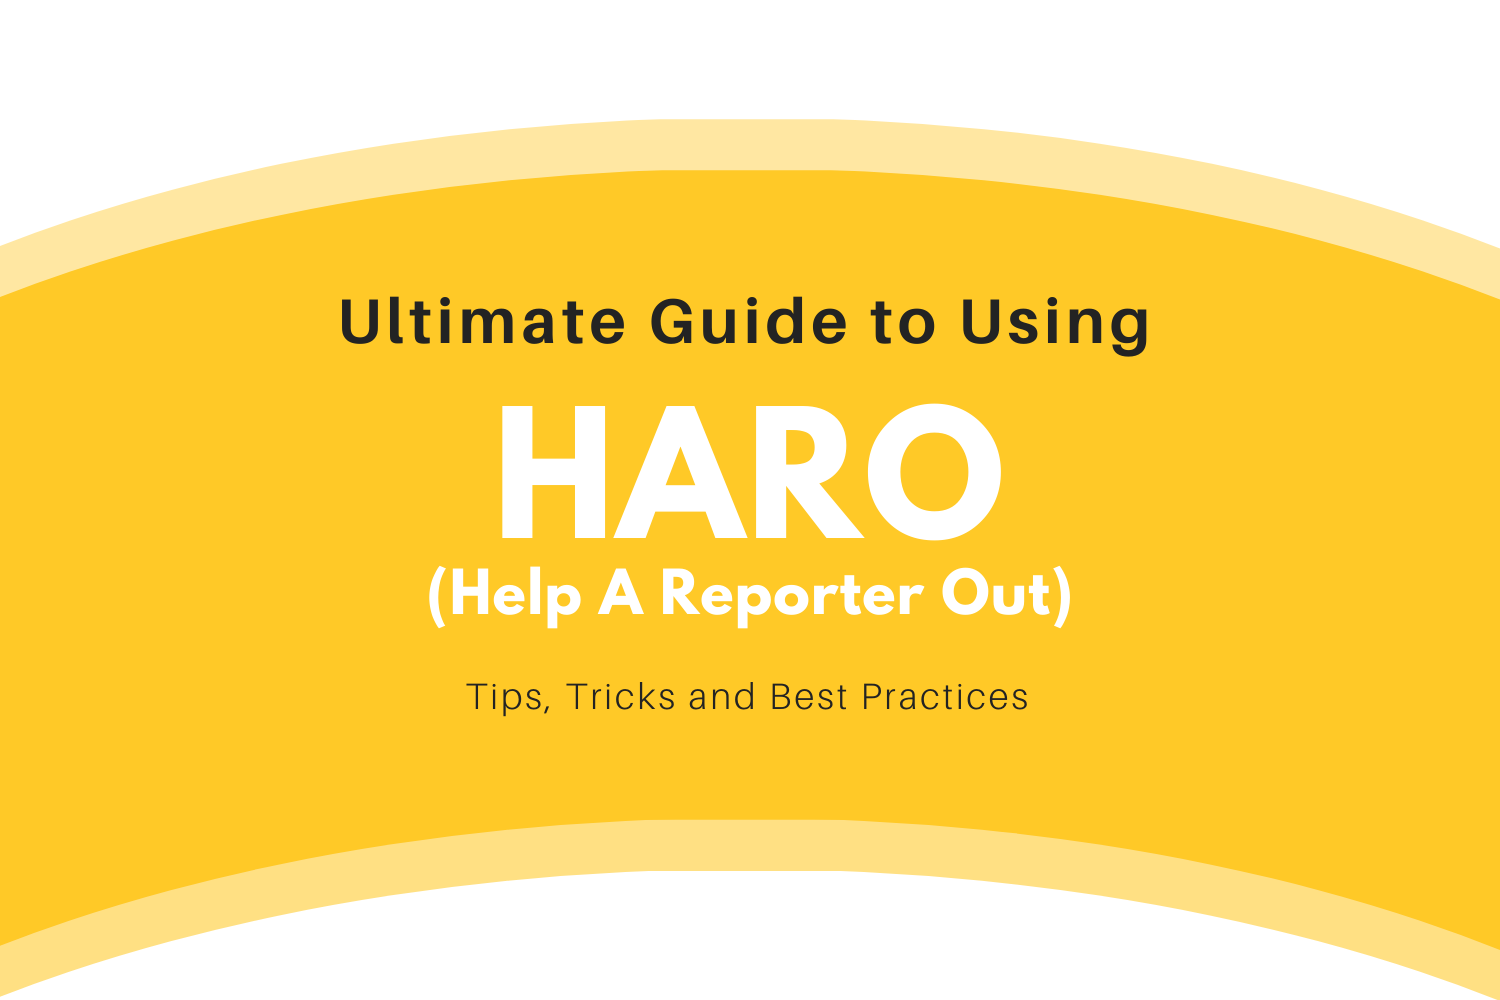 Ultimate Guide to HARO - Helping You Help A Reporter Out Better!